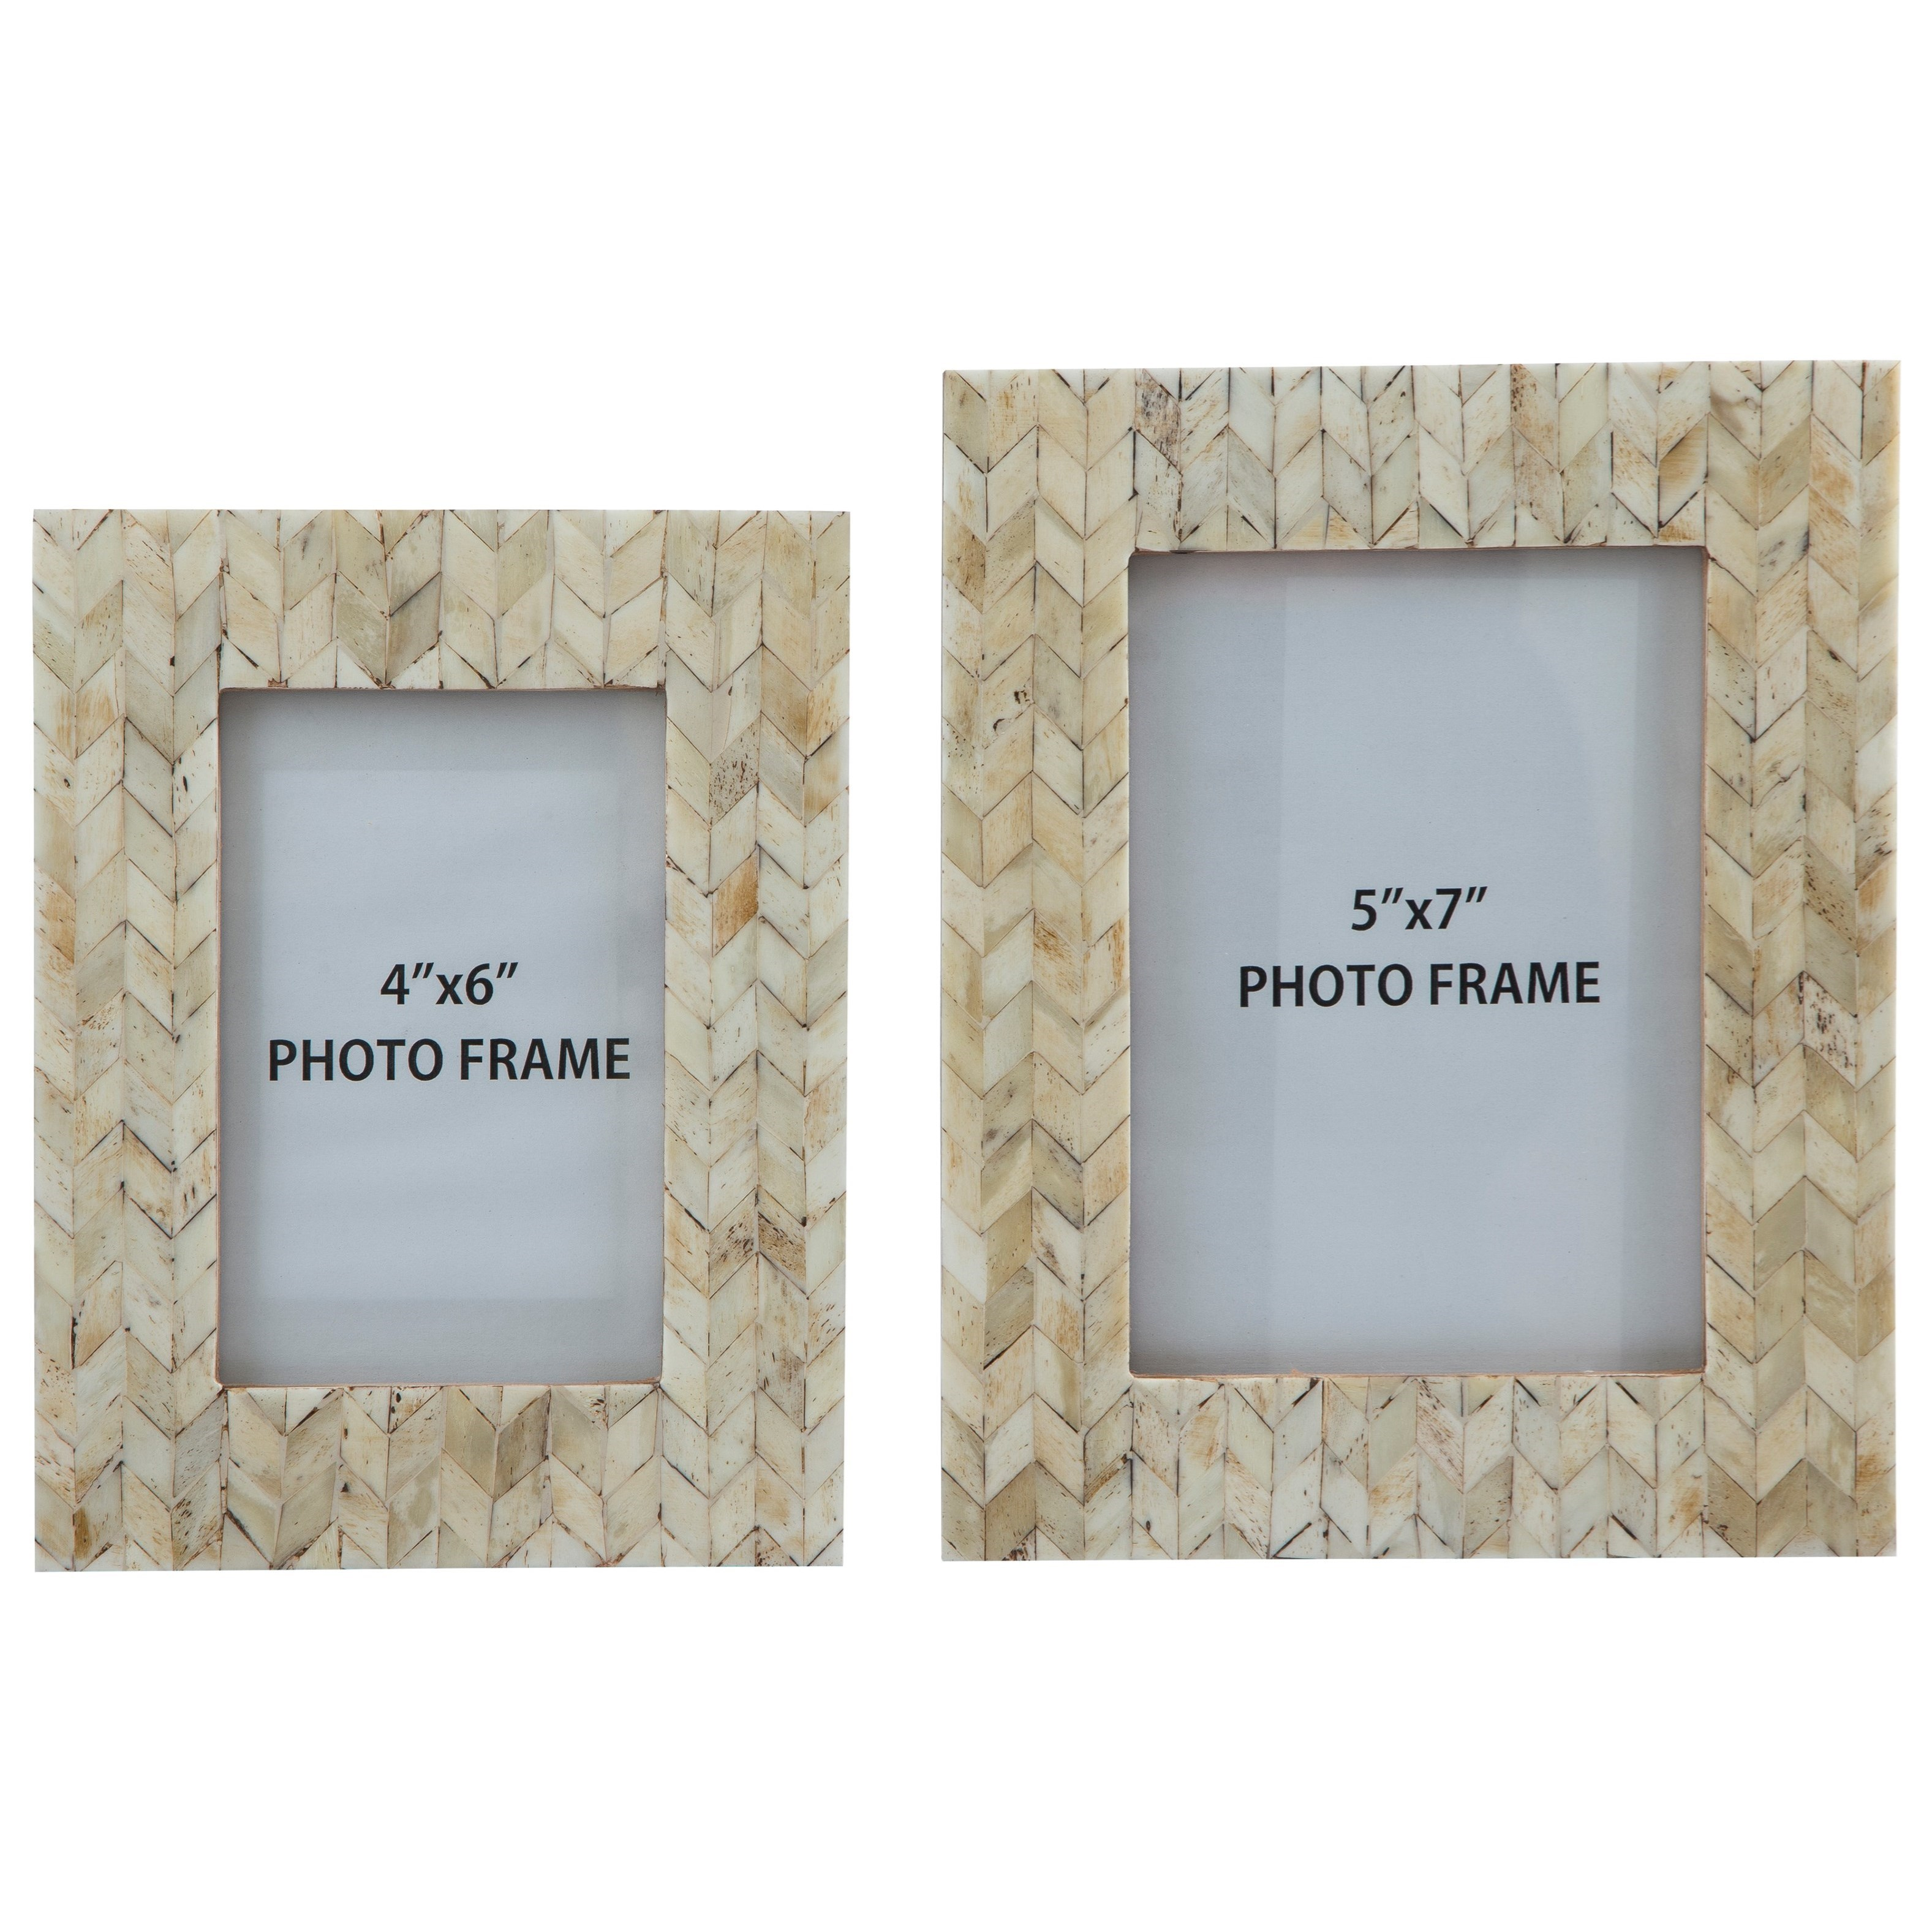 Signature Design by Ashley Accents Kase Cream Photo Frames (Set of 2) - Item Number: A2000195F